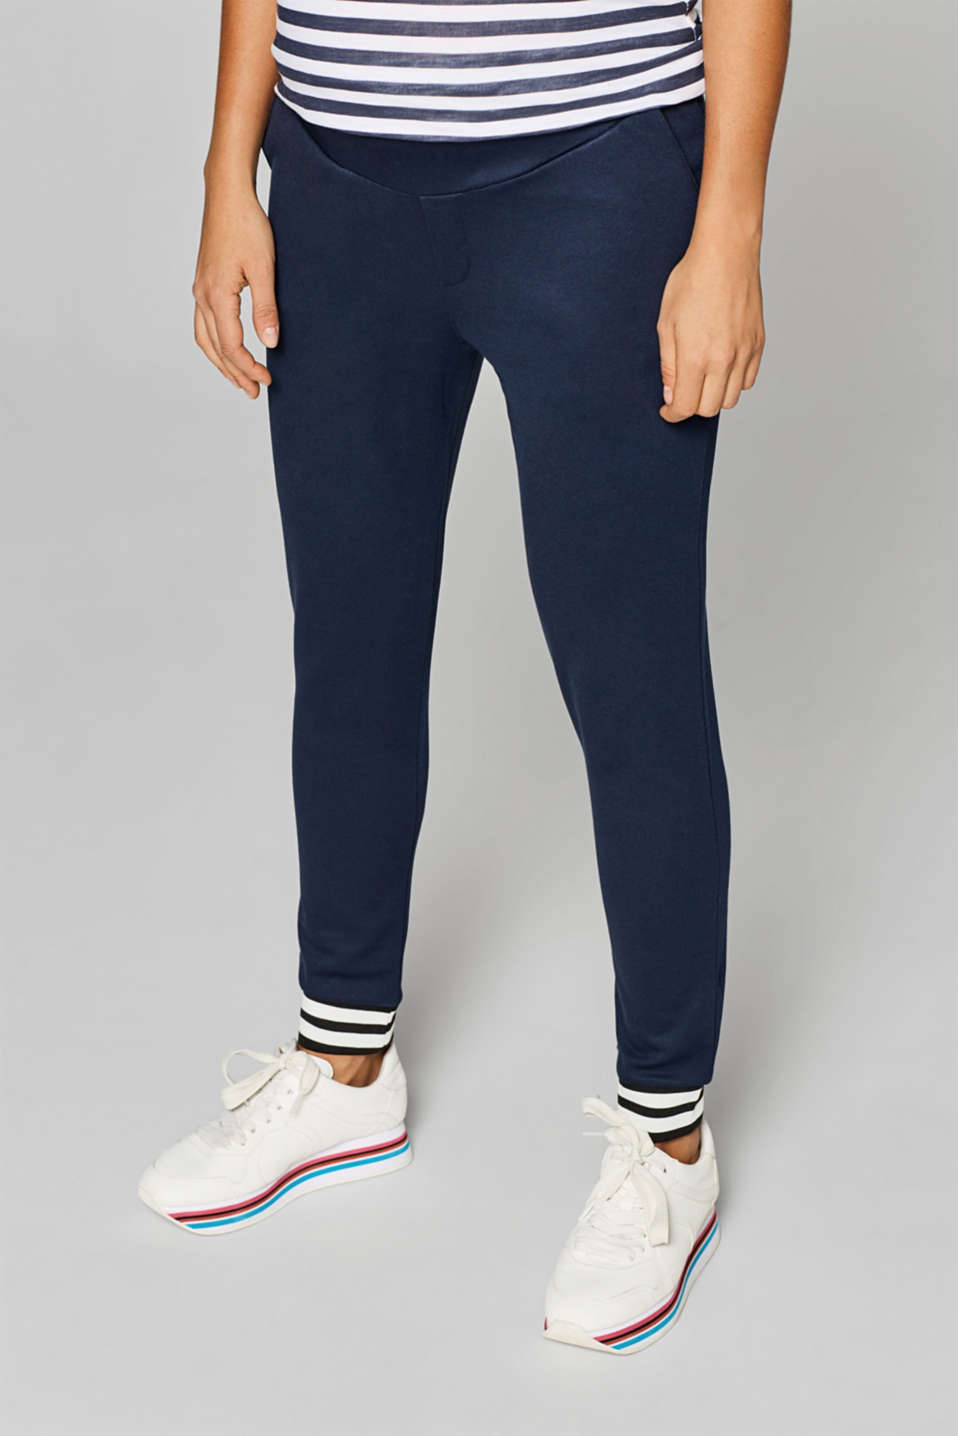 Esprit - Stretch jersey trousers with a striped hems